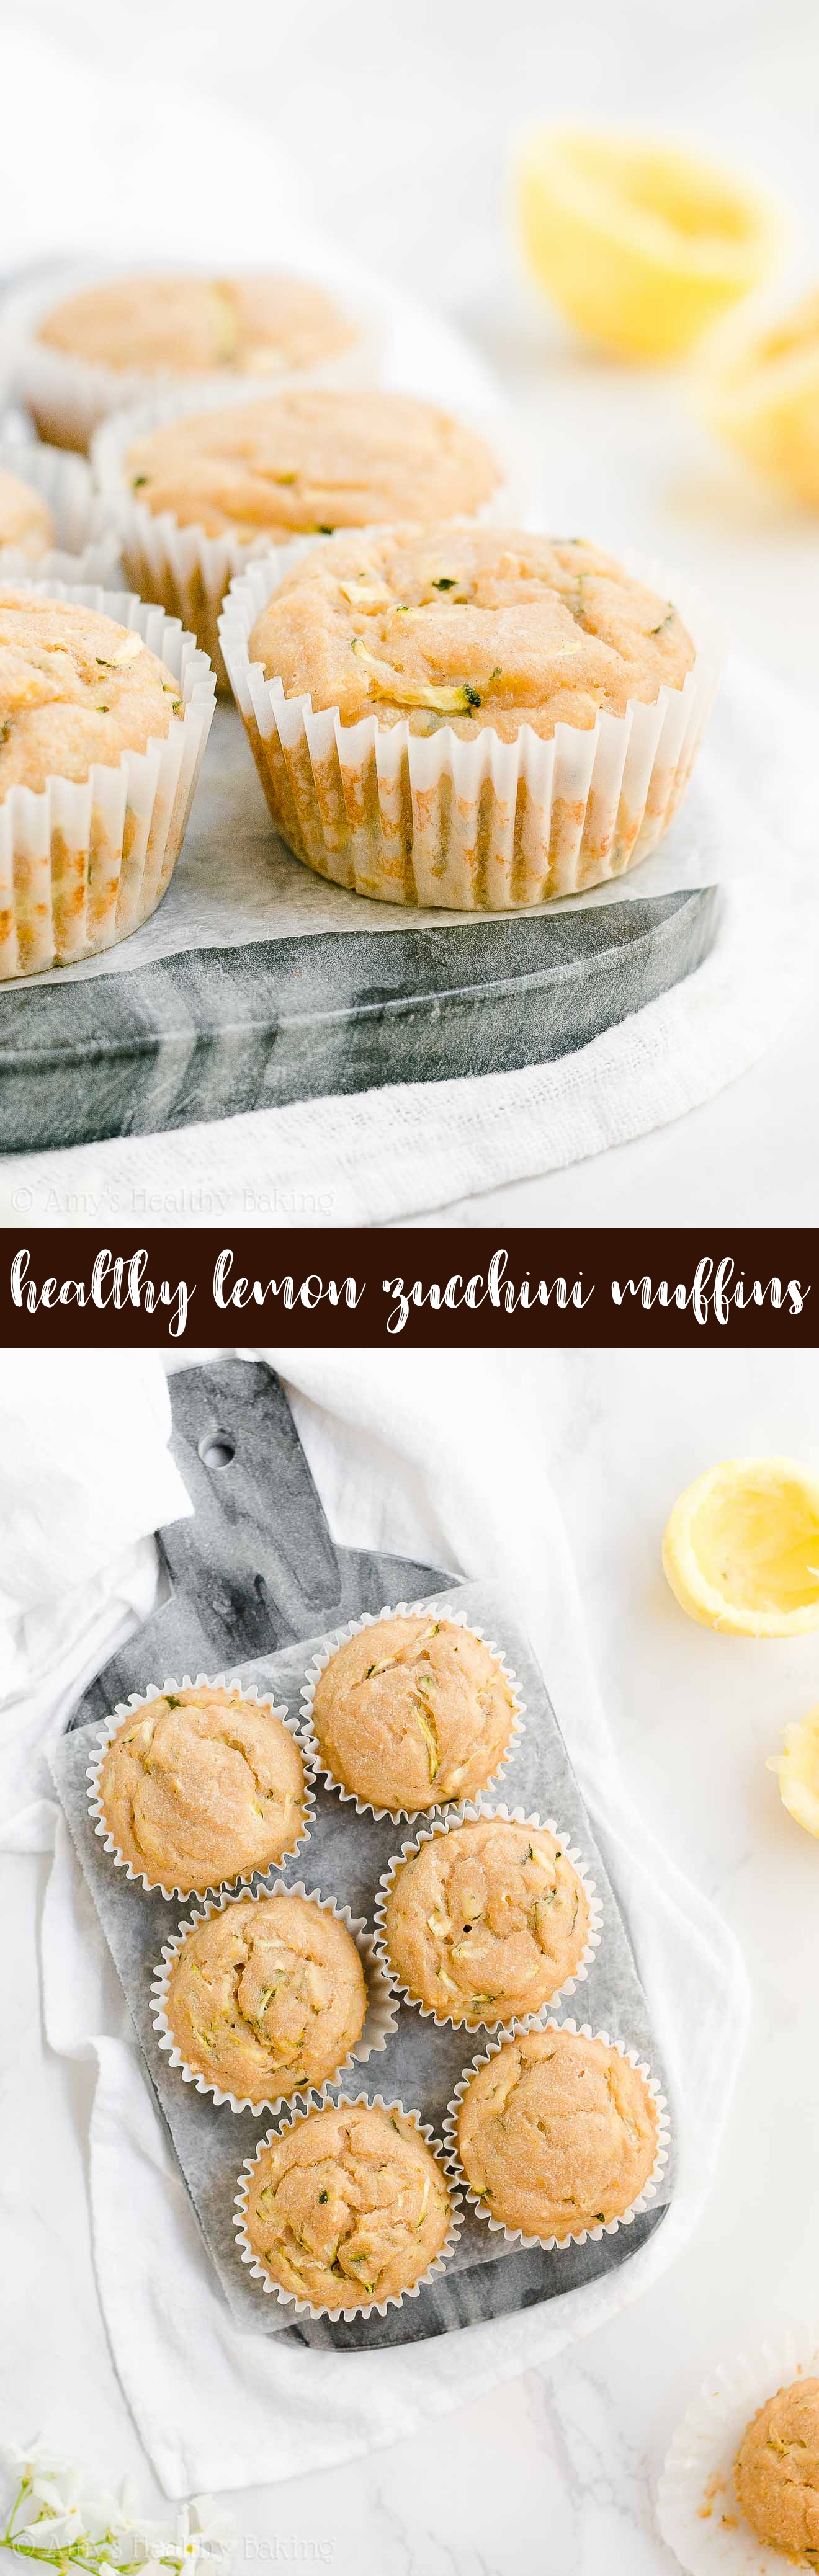 Absolute Best Ever Healthy Lemon Zucchini Muffins